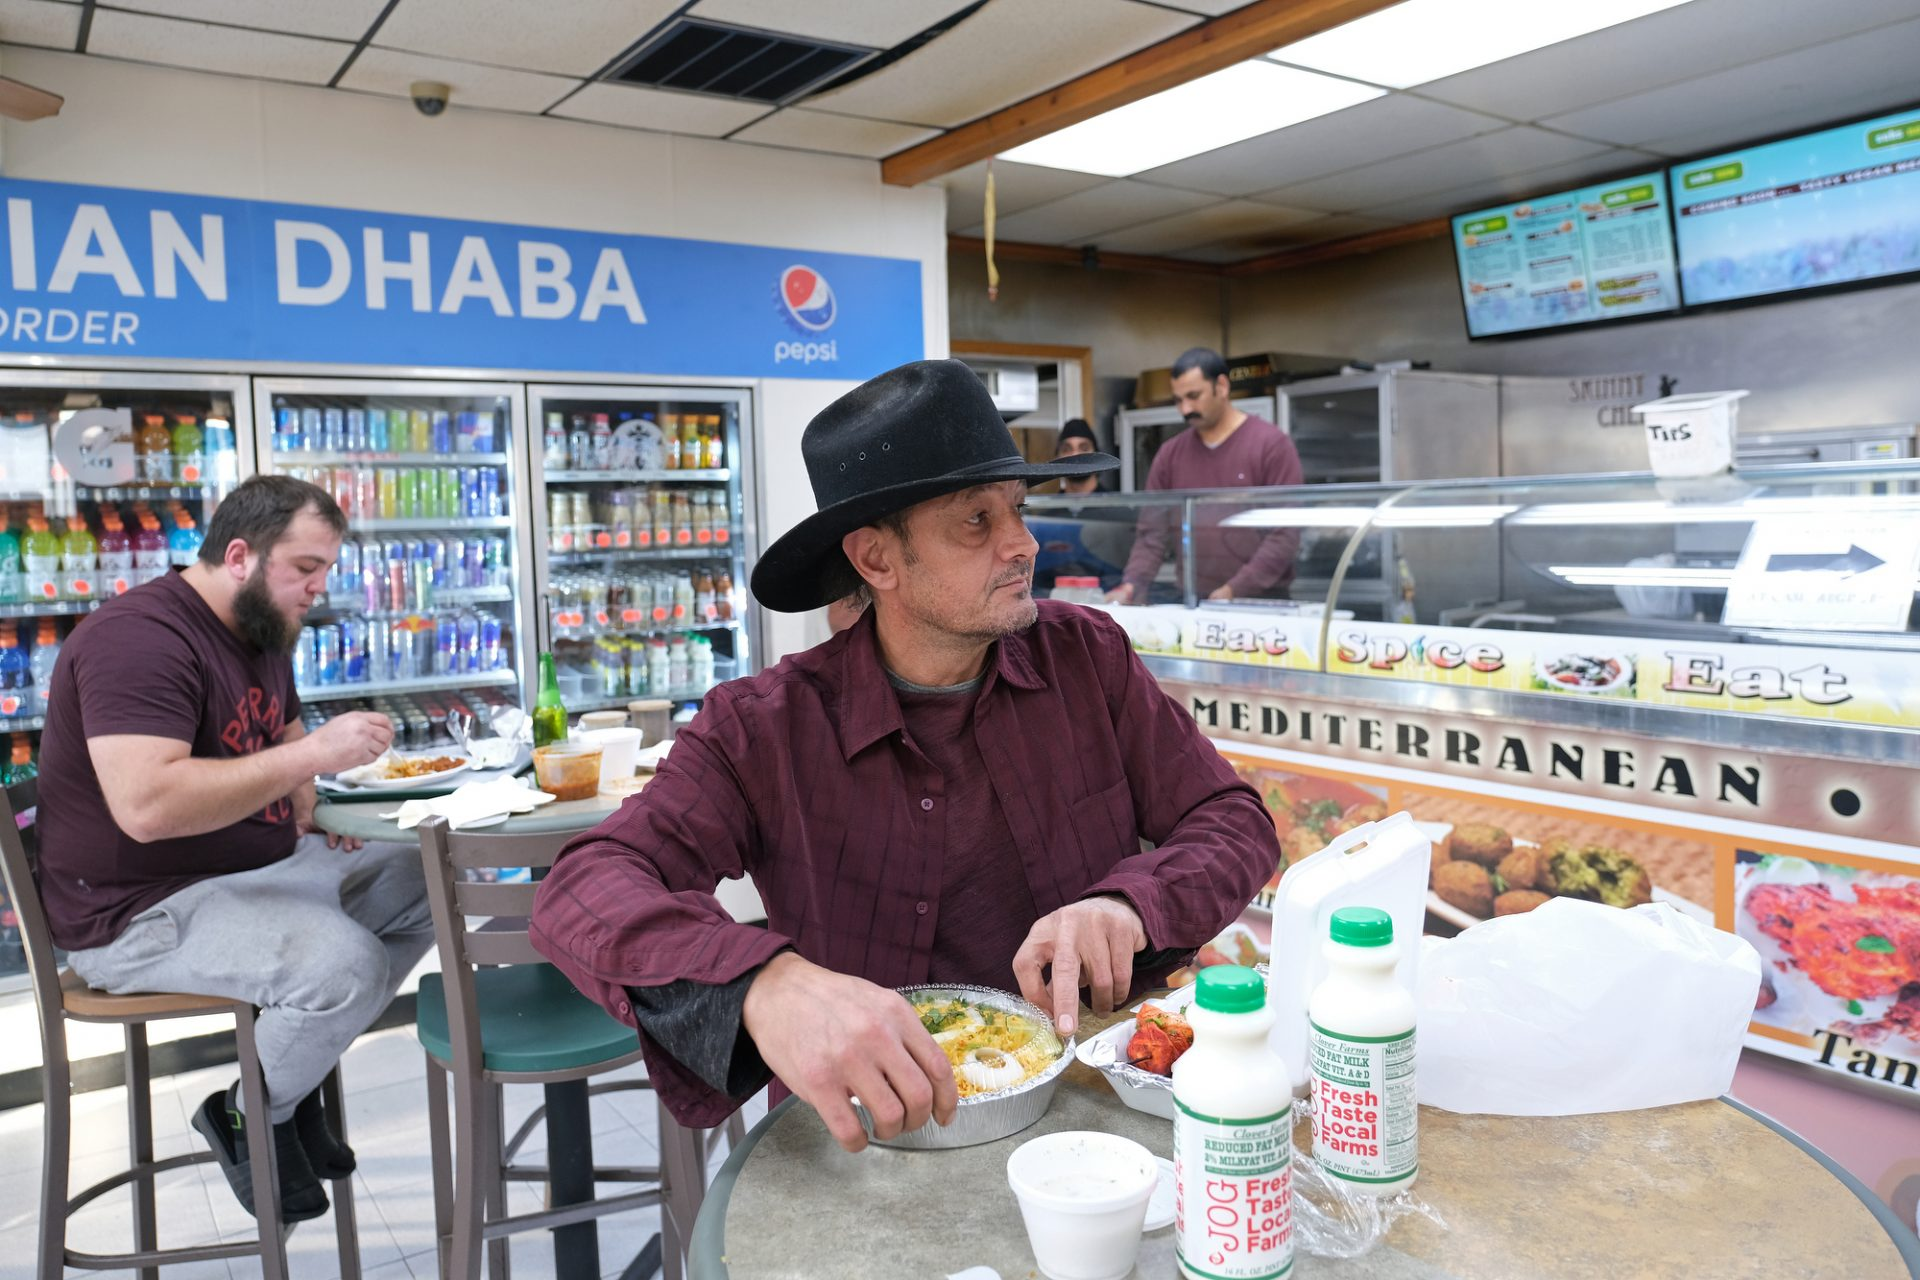 Sean Yazici, of Indiana, opens his food while inside Eat Spice on Oct. 24, 2019, in the truck stop on route 534 off I-80 in White Haven, Pennsylvania. The restaurant caters to members of the Sikh community and as there is a large population of truckers from that community, the Indian Dhaba and Mediterranean dishes become hard to find on the road.